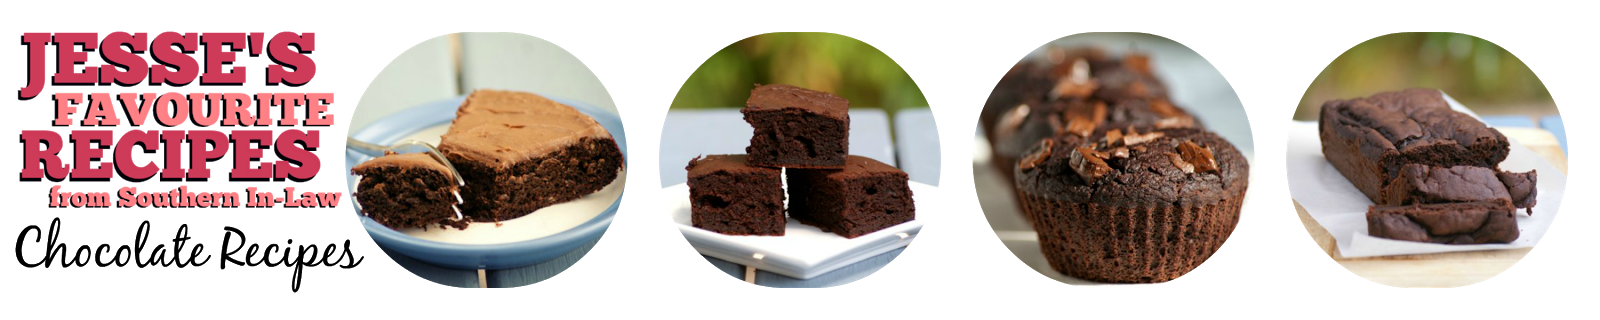 Healthy Chocolate Recipes - Gluten Free, Low Fat, Sugar Free